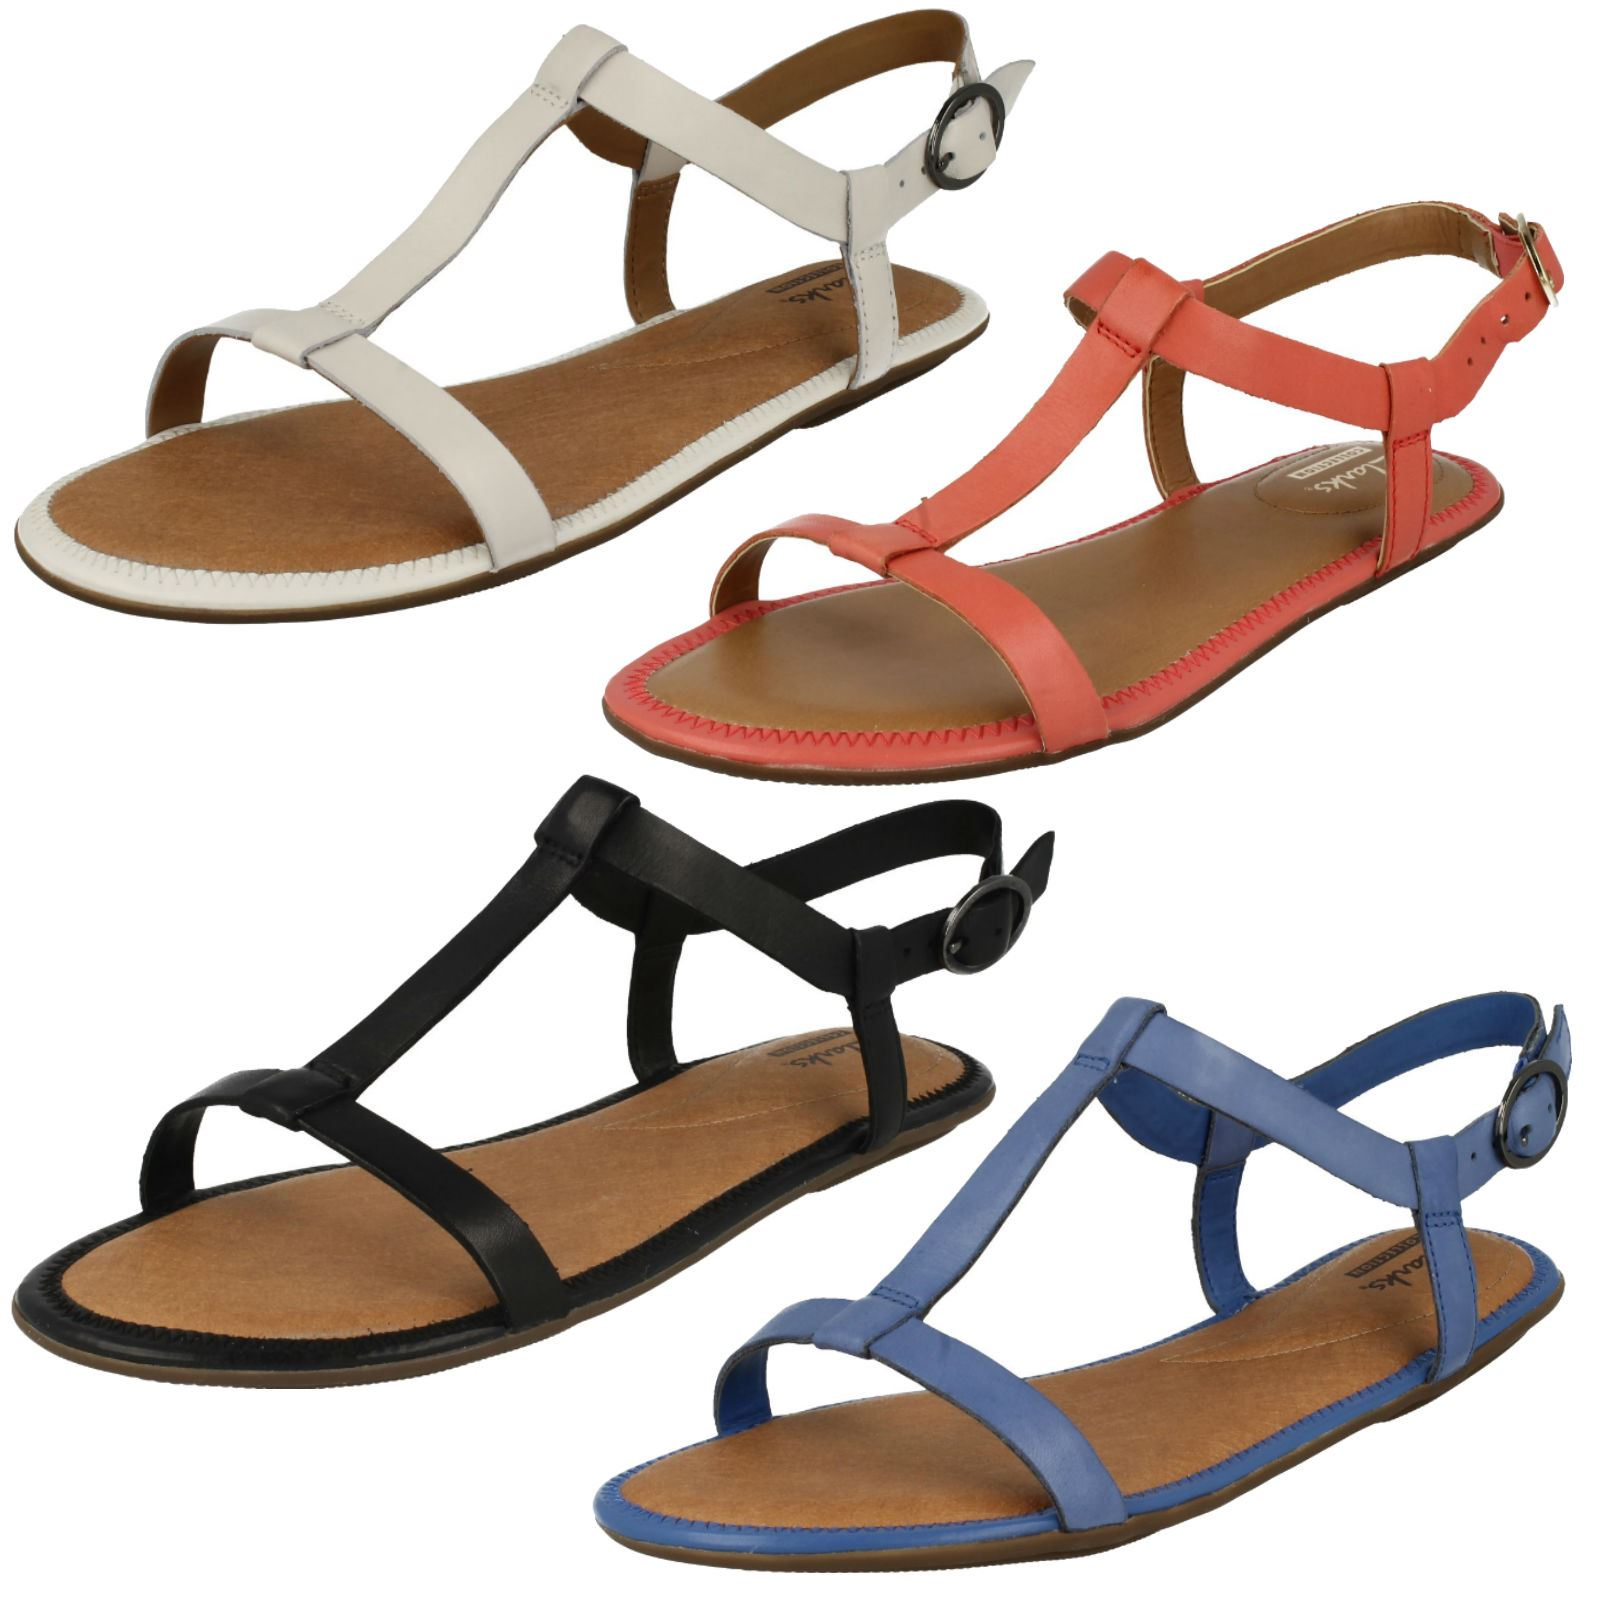 01f5654f4d7e8 Details about Ladies Clarks Risi Hop Strap Sandals